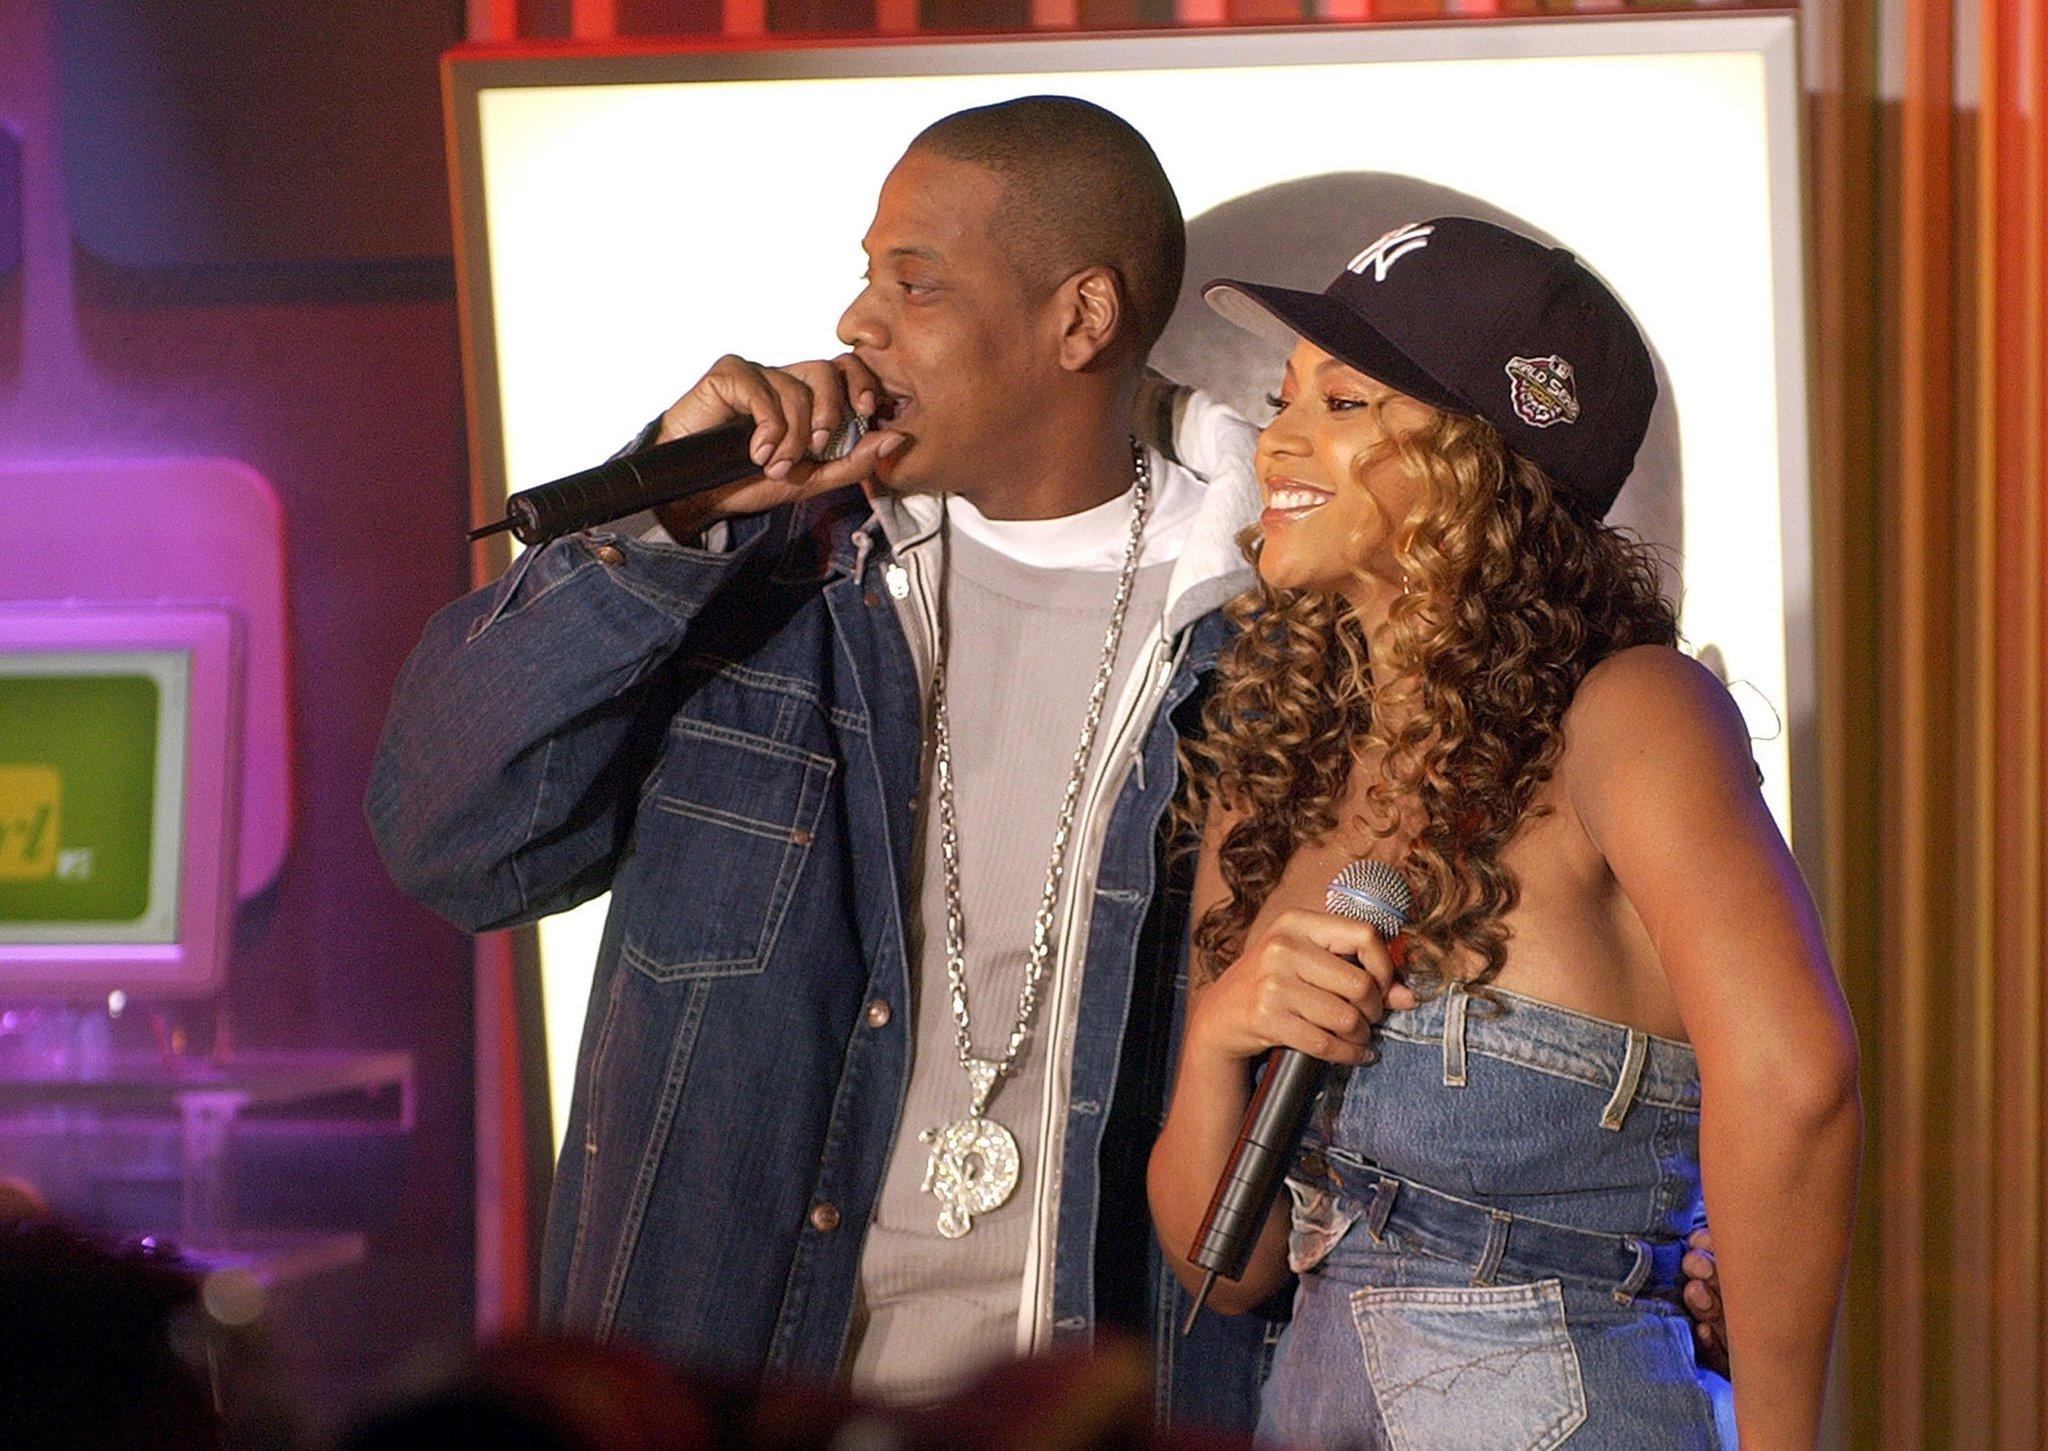 Beyoncé and Jay Z: A Detailed Timeline of Their Private Yet